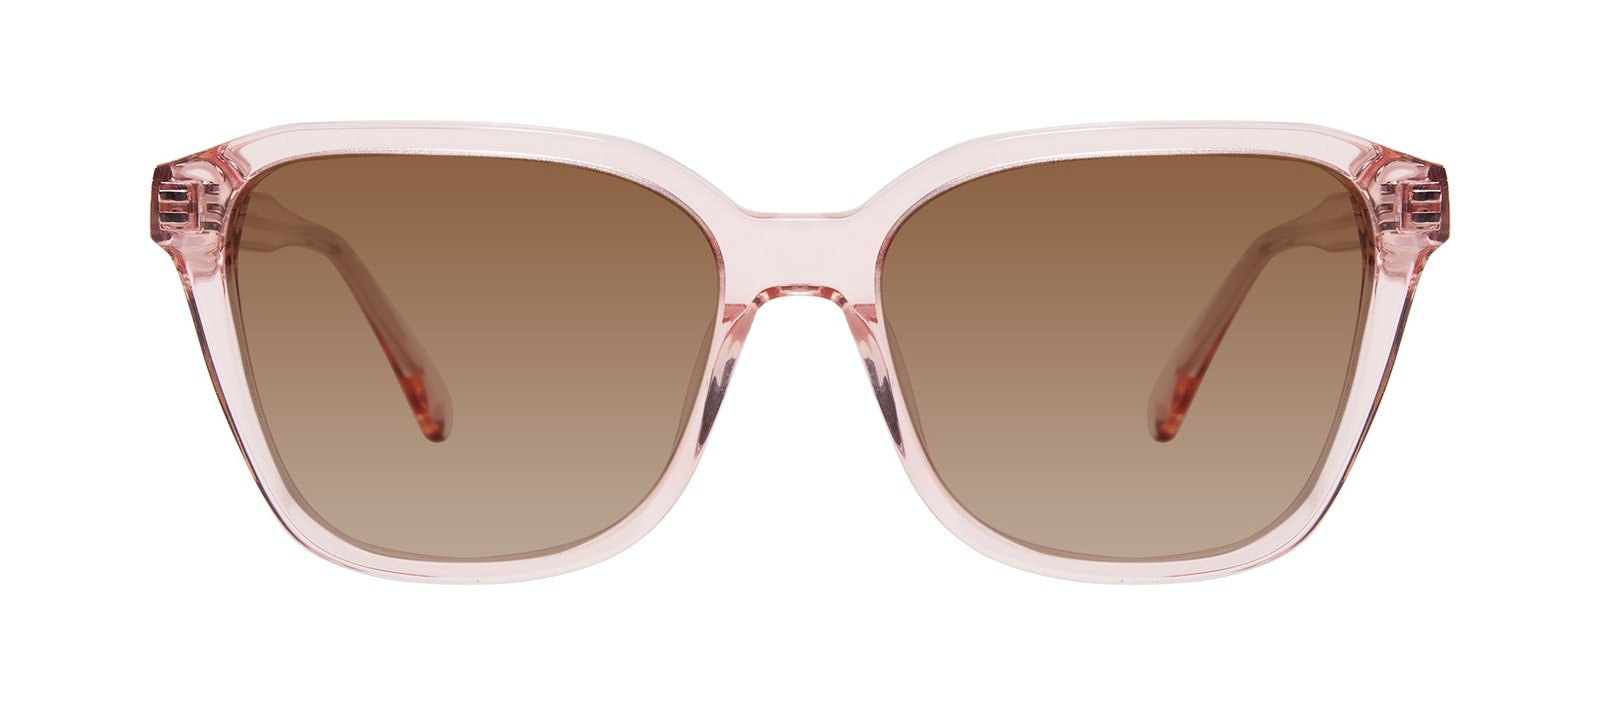 Affordable Fashion Glasses Square Sunglasses Women Basel Peony Front